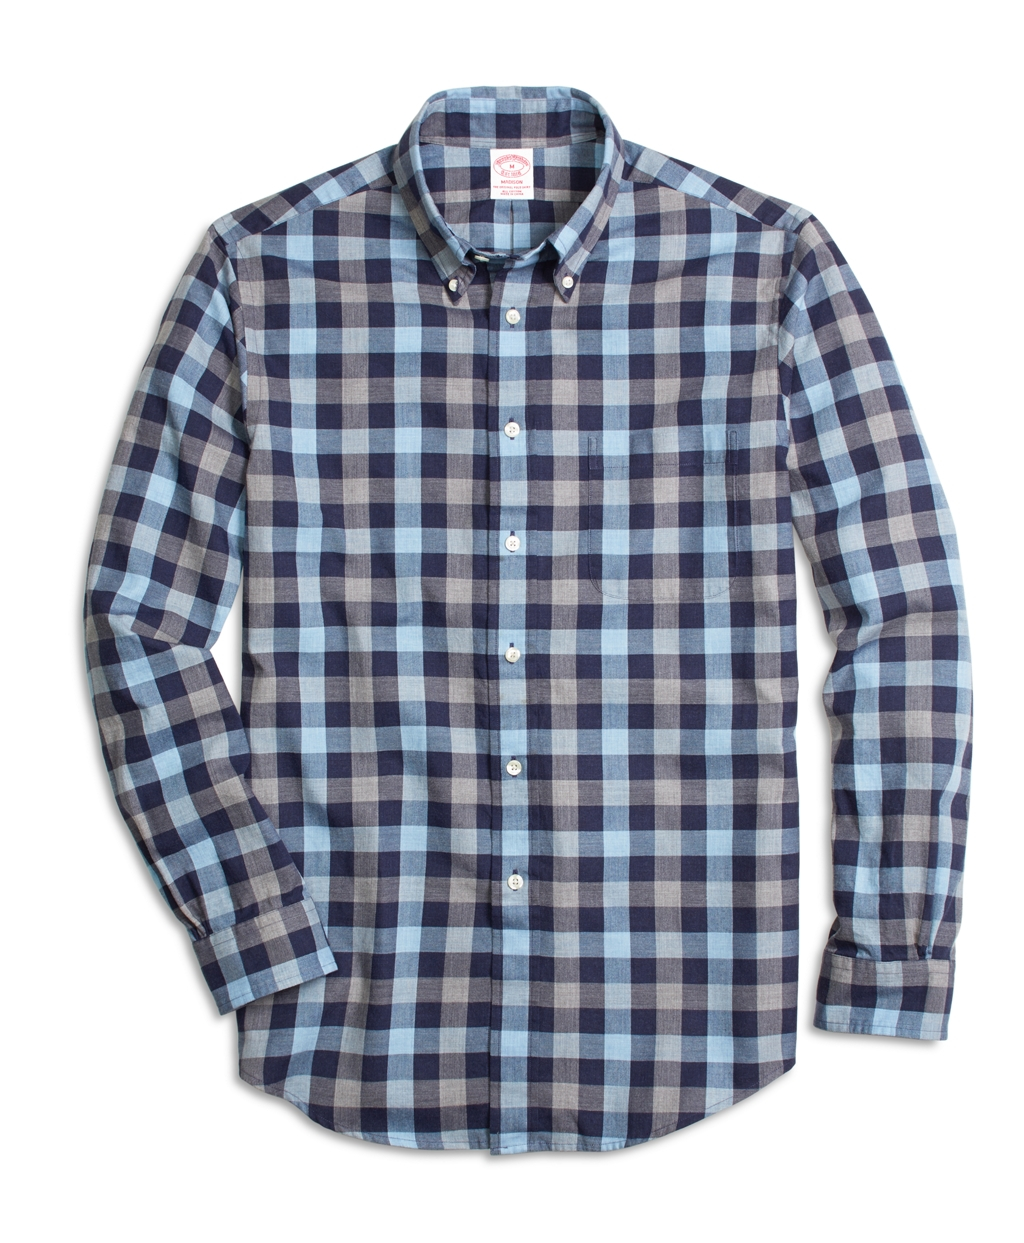 Brooks brothers milano fit blue heathered plaid sport Brooks brothers shirt size guide